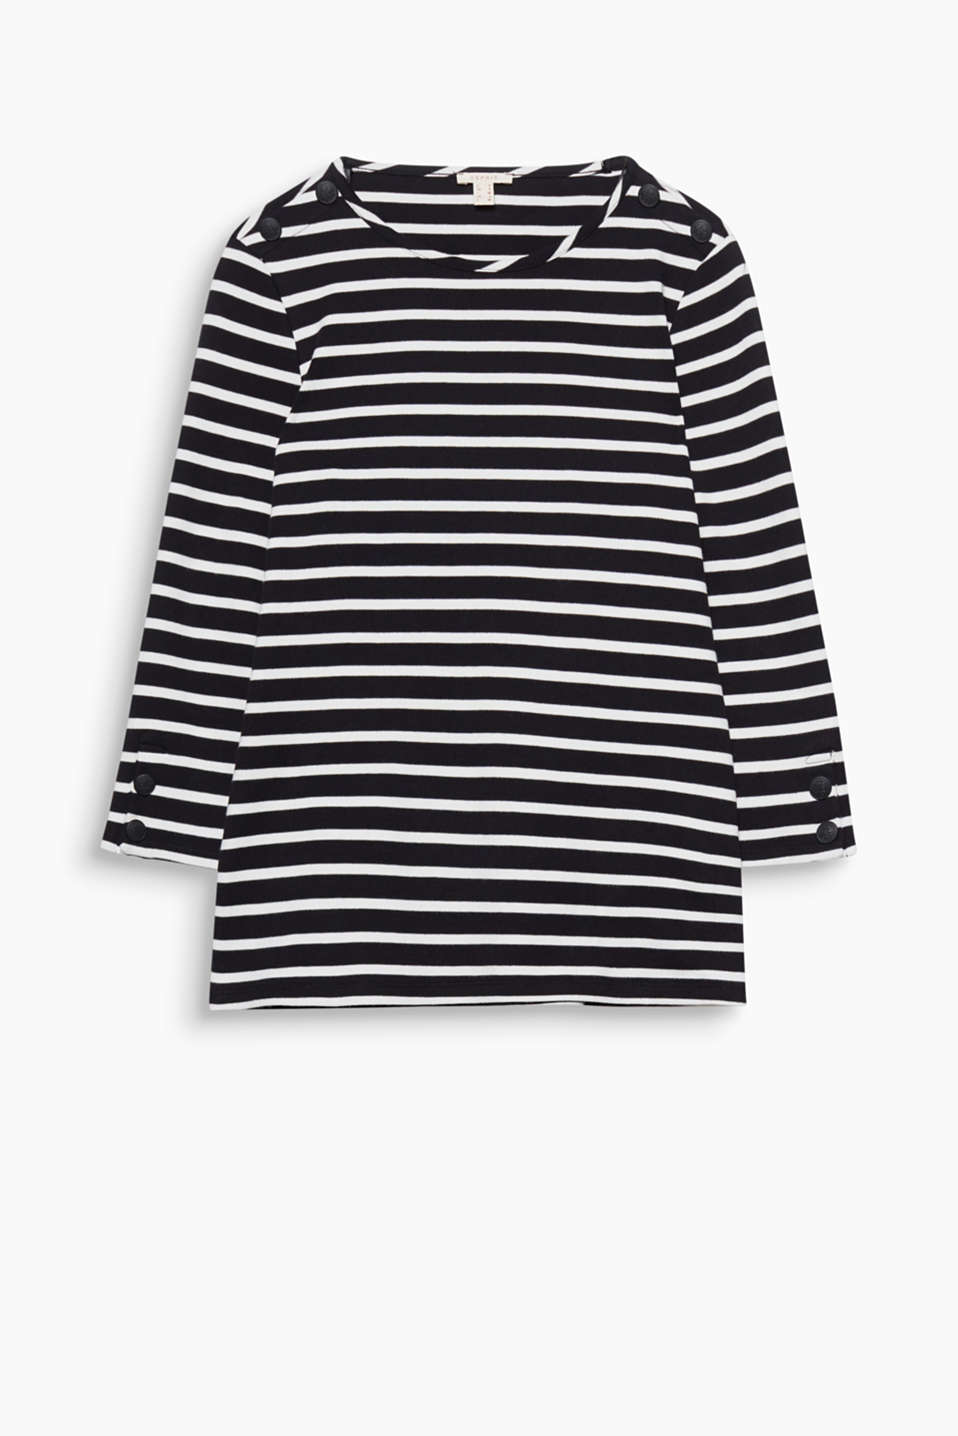 Fitted striped top with bateau neckline, shoulder buttons + 3/4-length sleeves in heavy jersey for a new nautical look